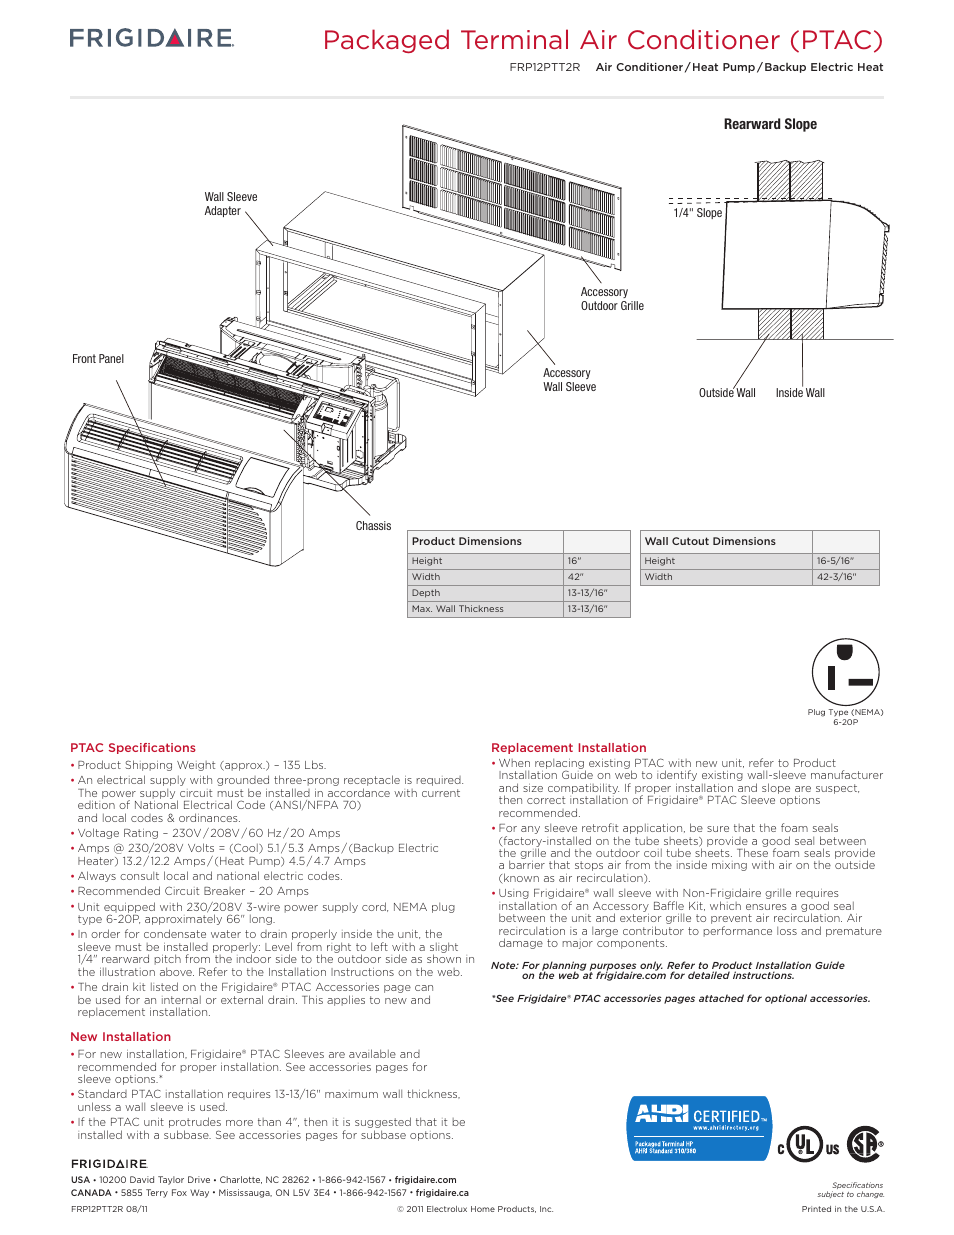 medium resolution of packaged terminal air conditioner ptac rearward slope frigidaire frp12ptt2r user manual page 3 6